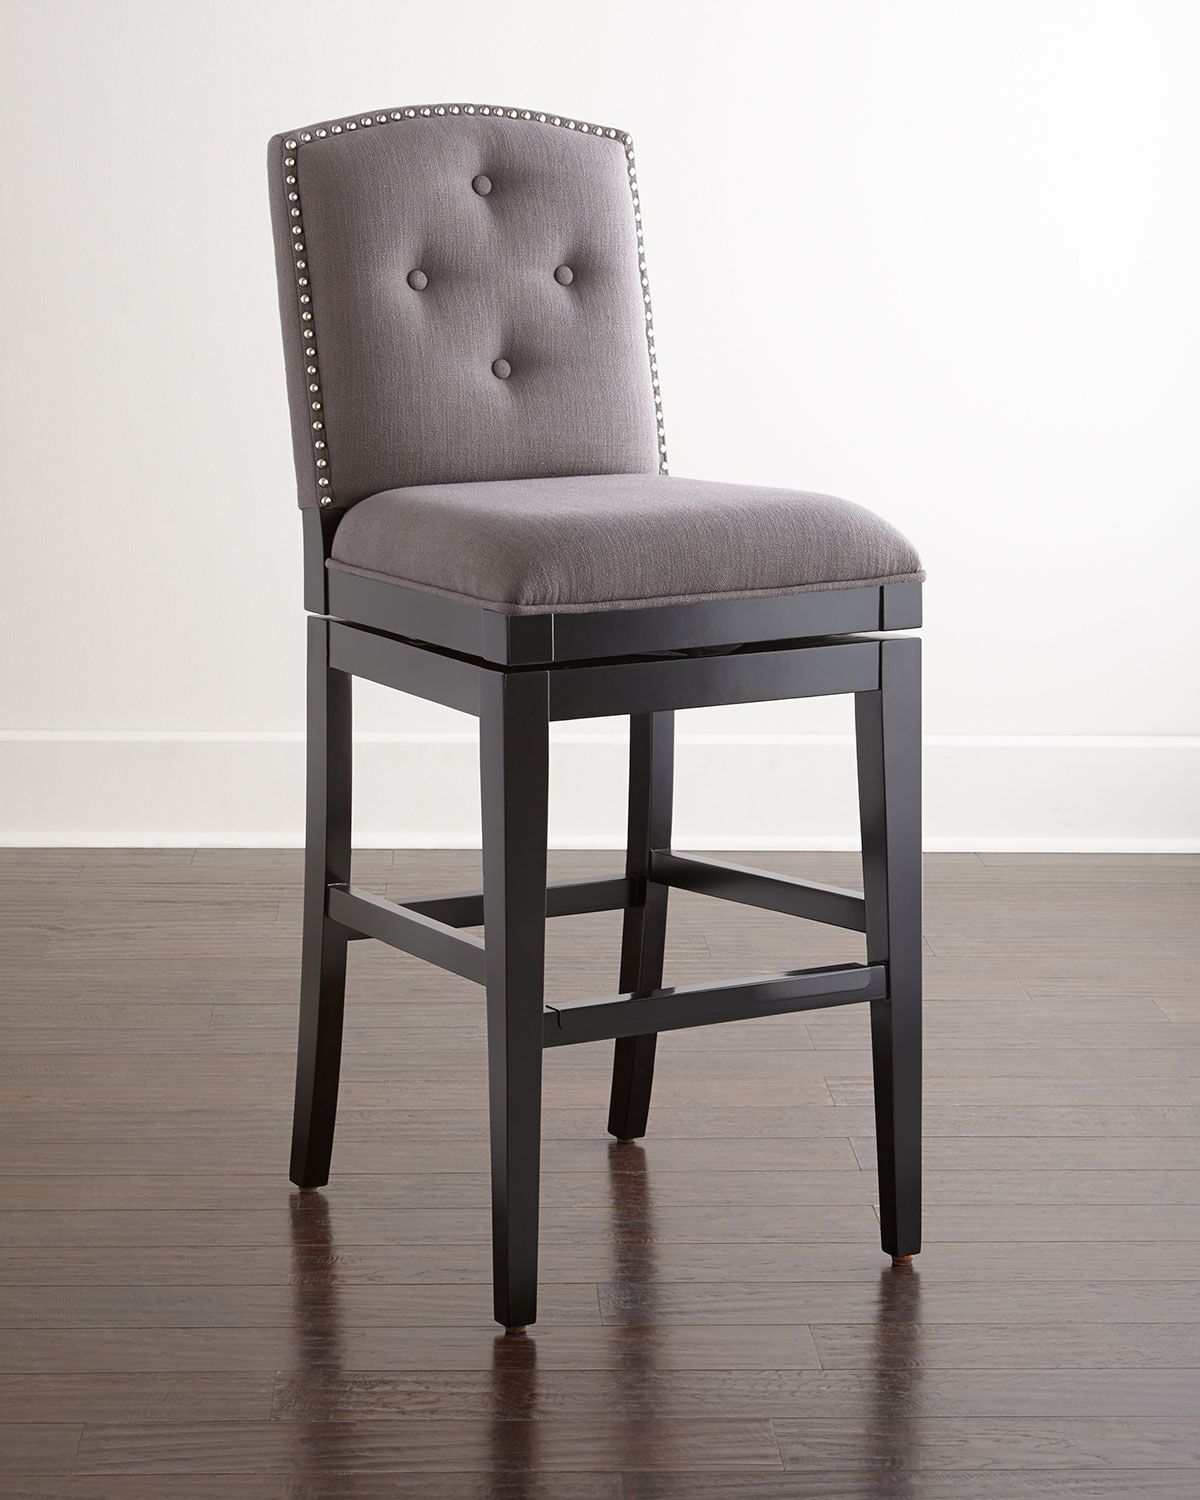 Pepperton Tufted Swivel Counter Stool Island Chairs Bar Stool